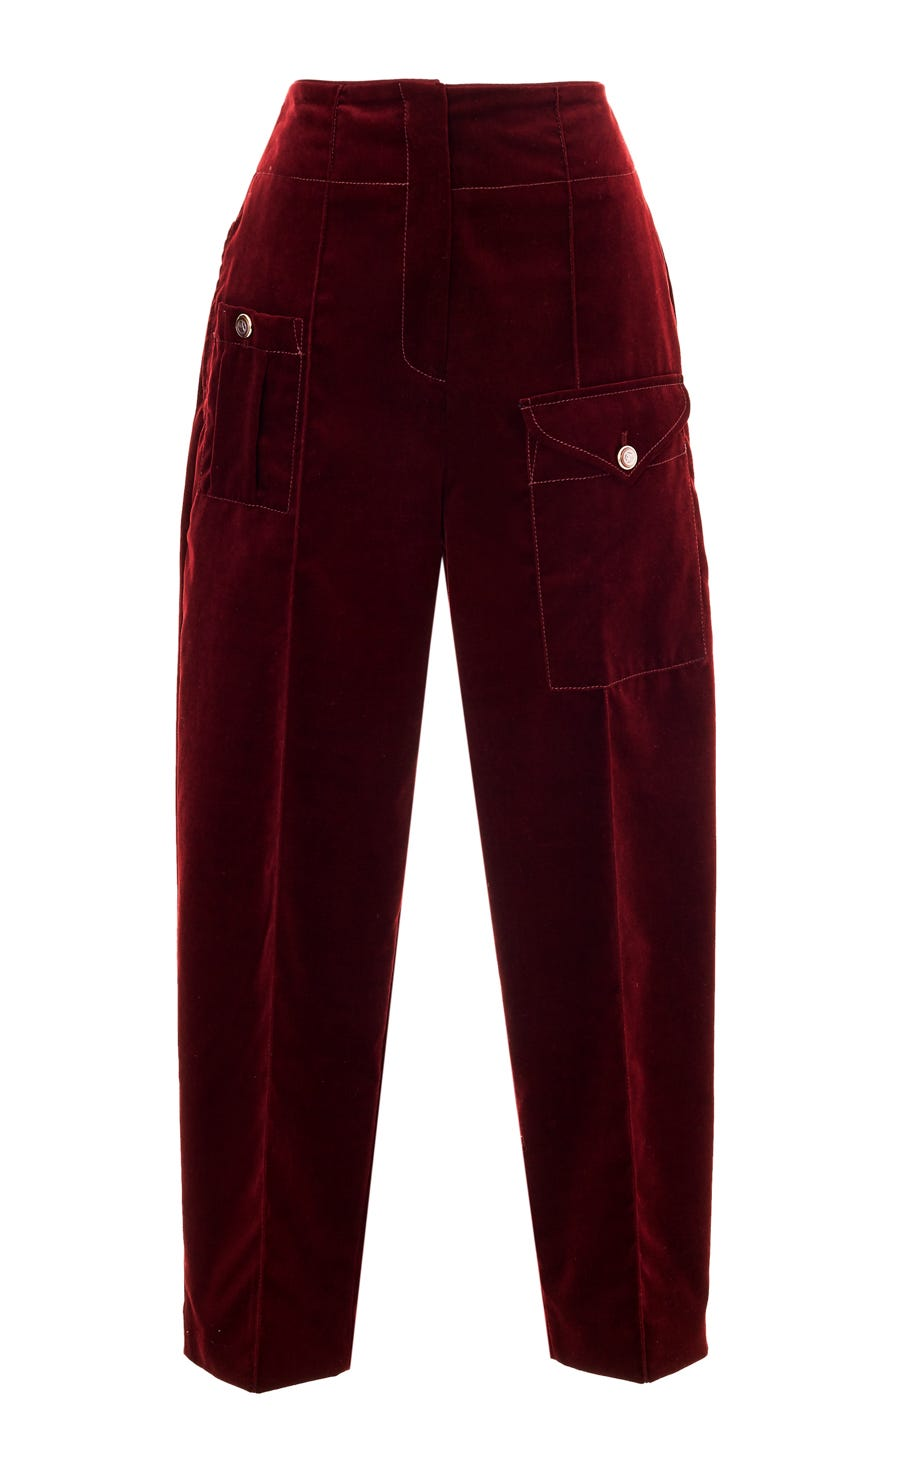 Esmeralda Tailored Trousers